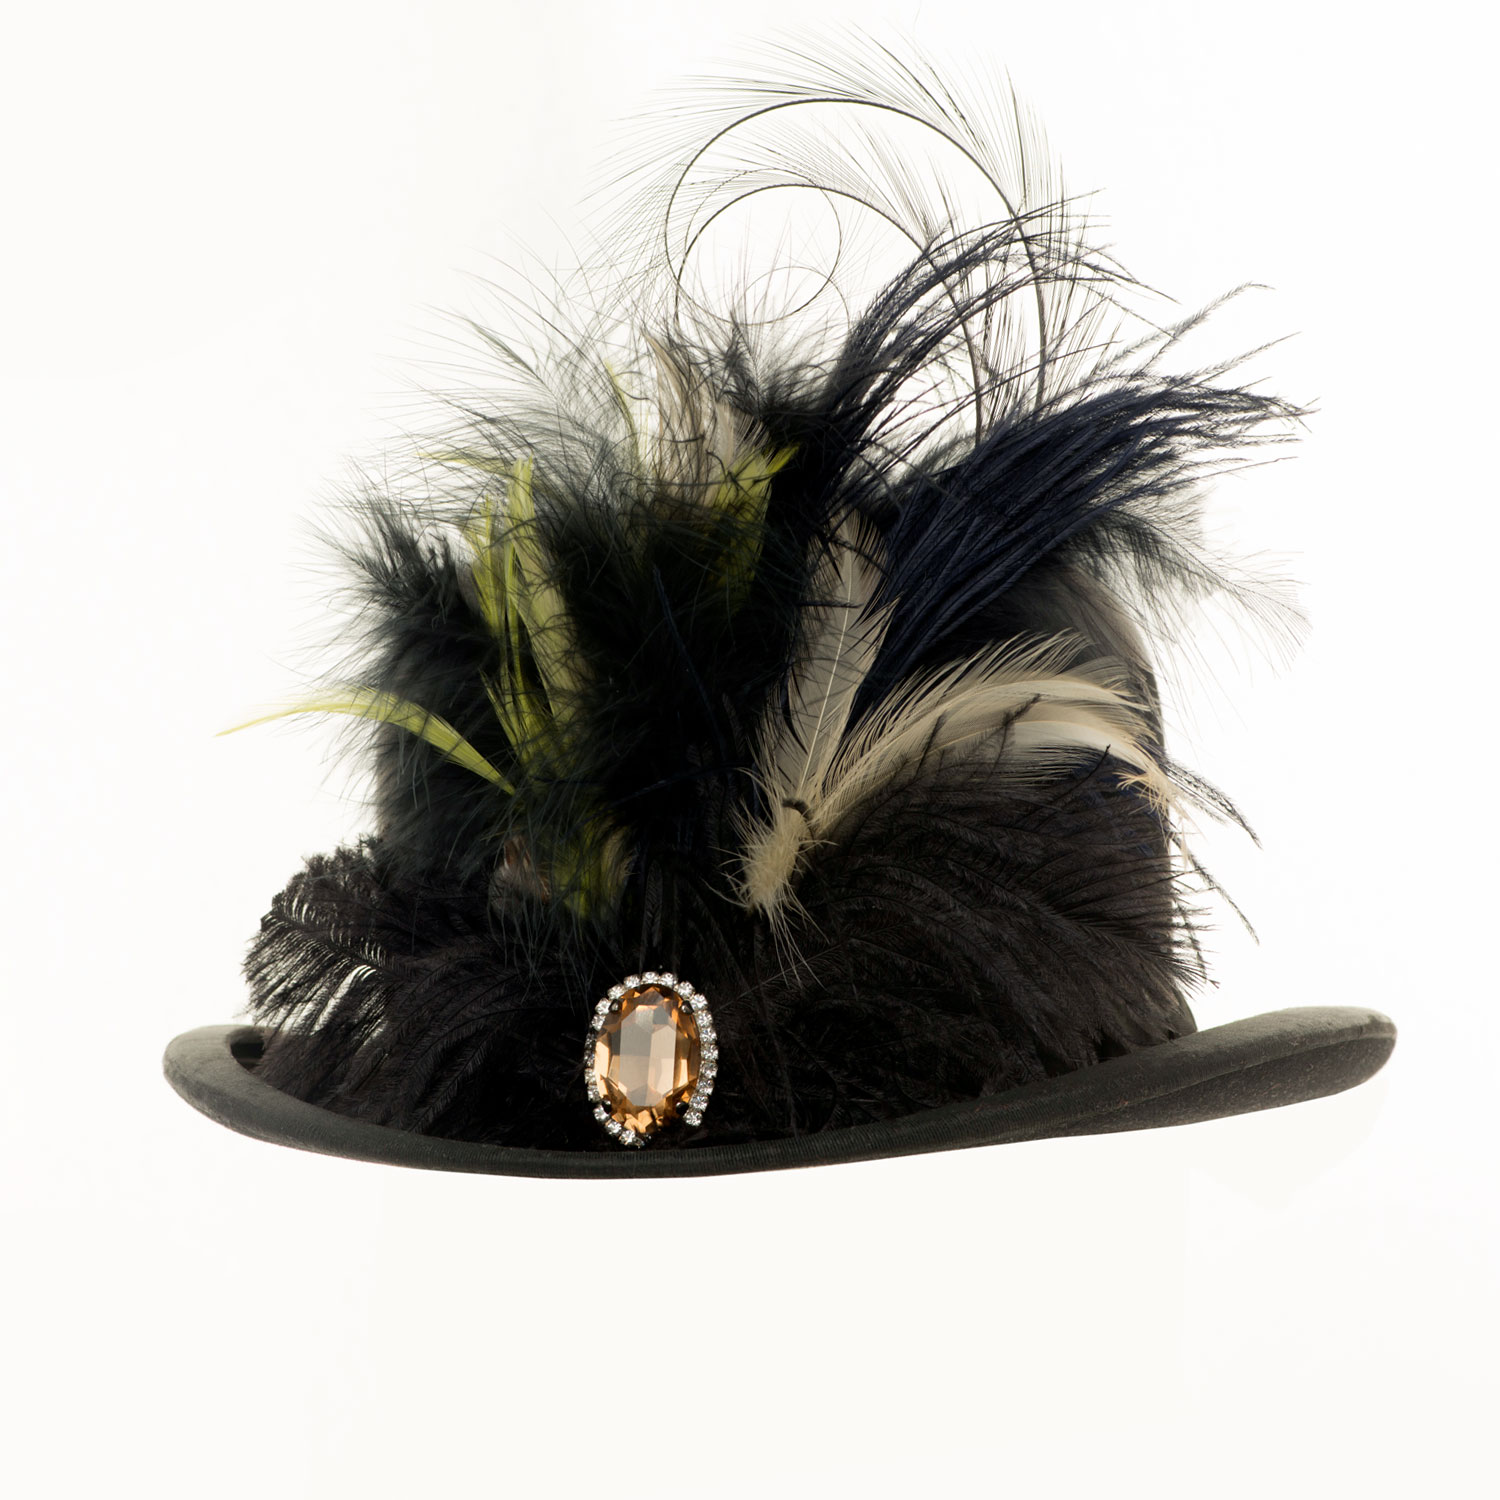 Bowler Hats with feathers from Priestley & West